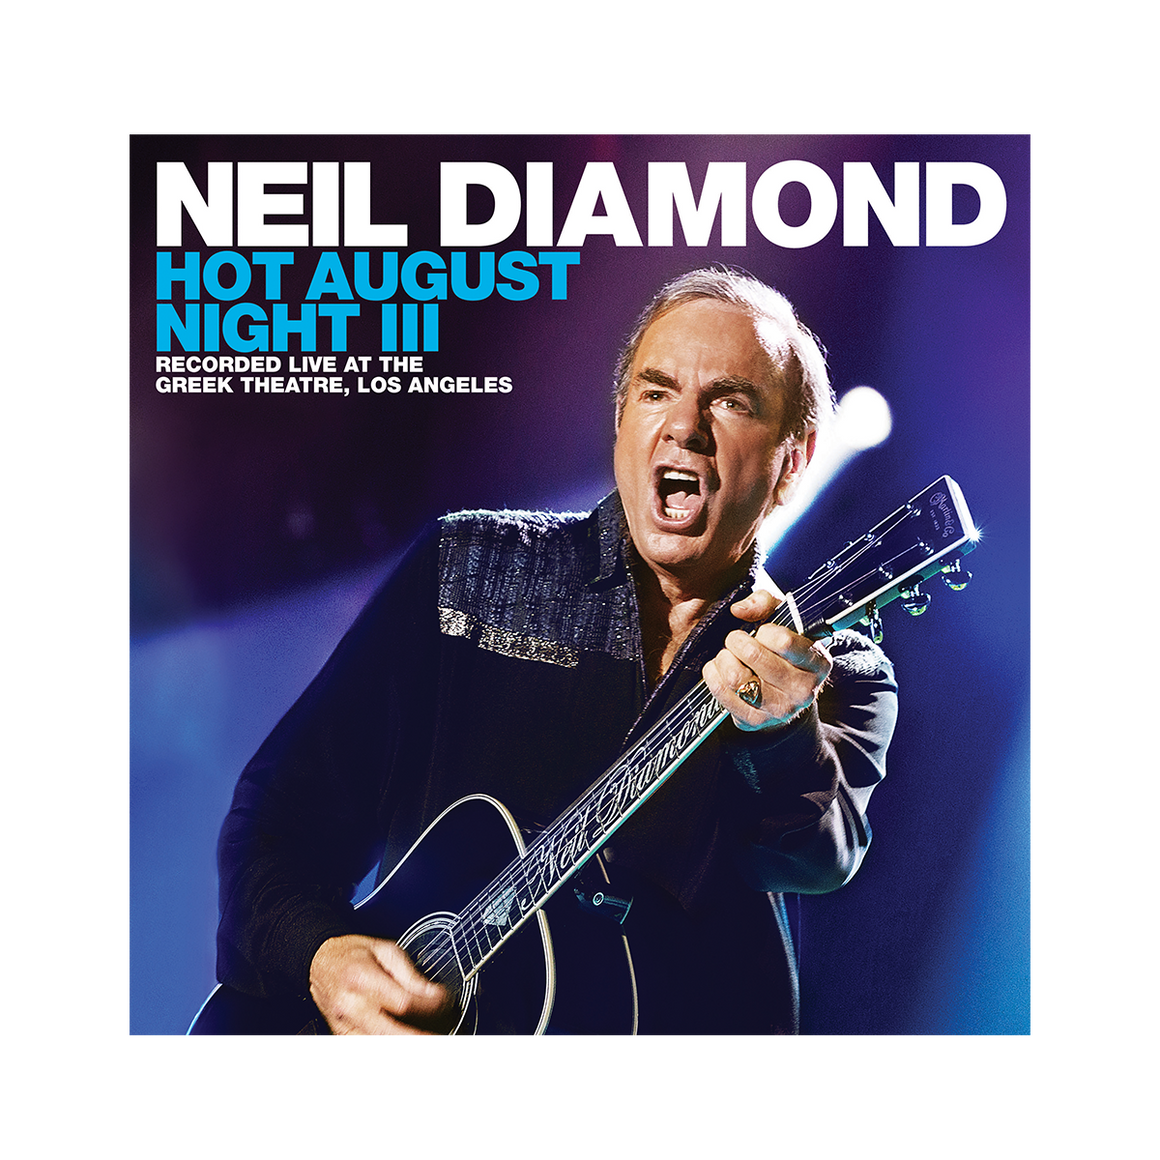 Hot August Night III 2 CD-Neil Diamond